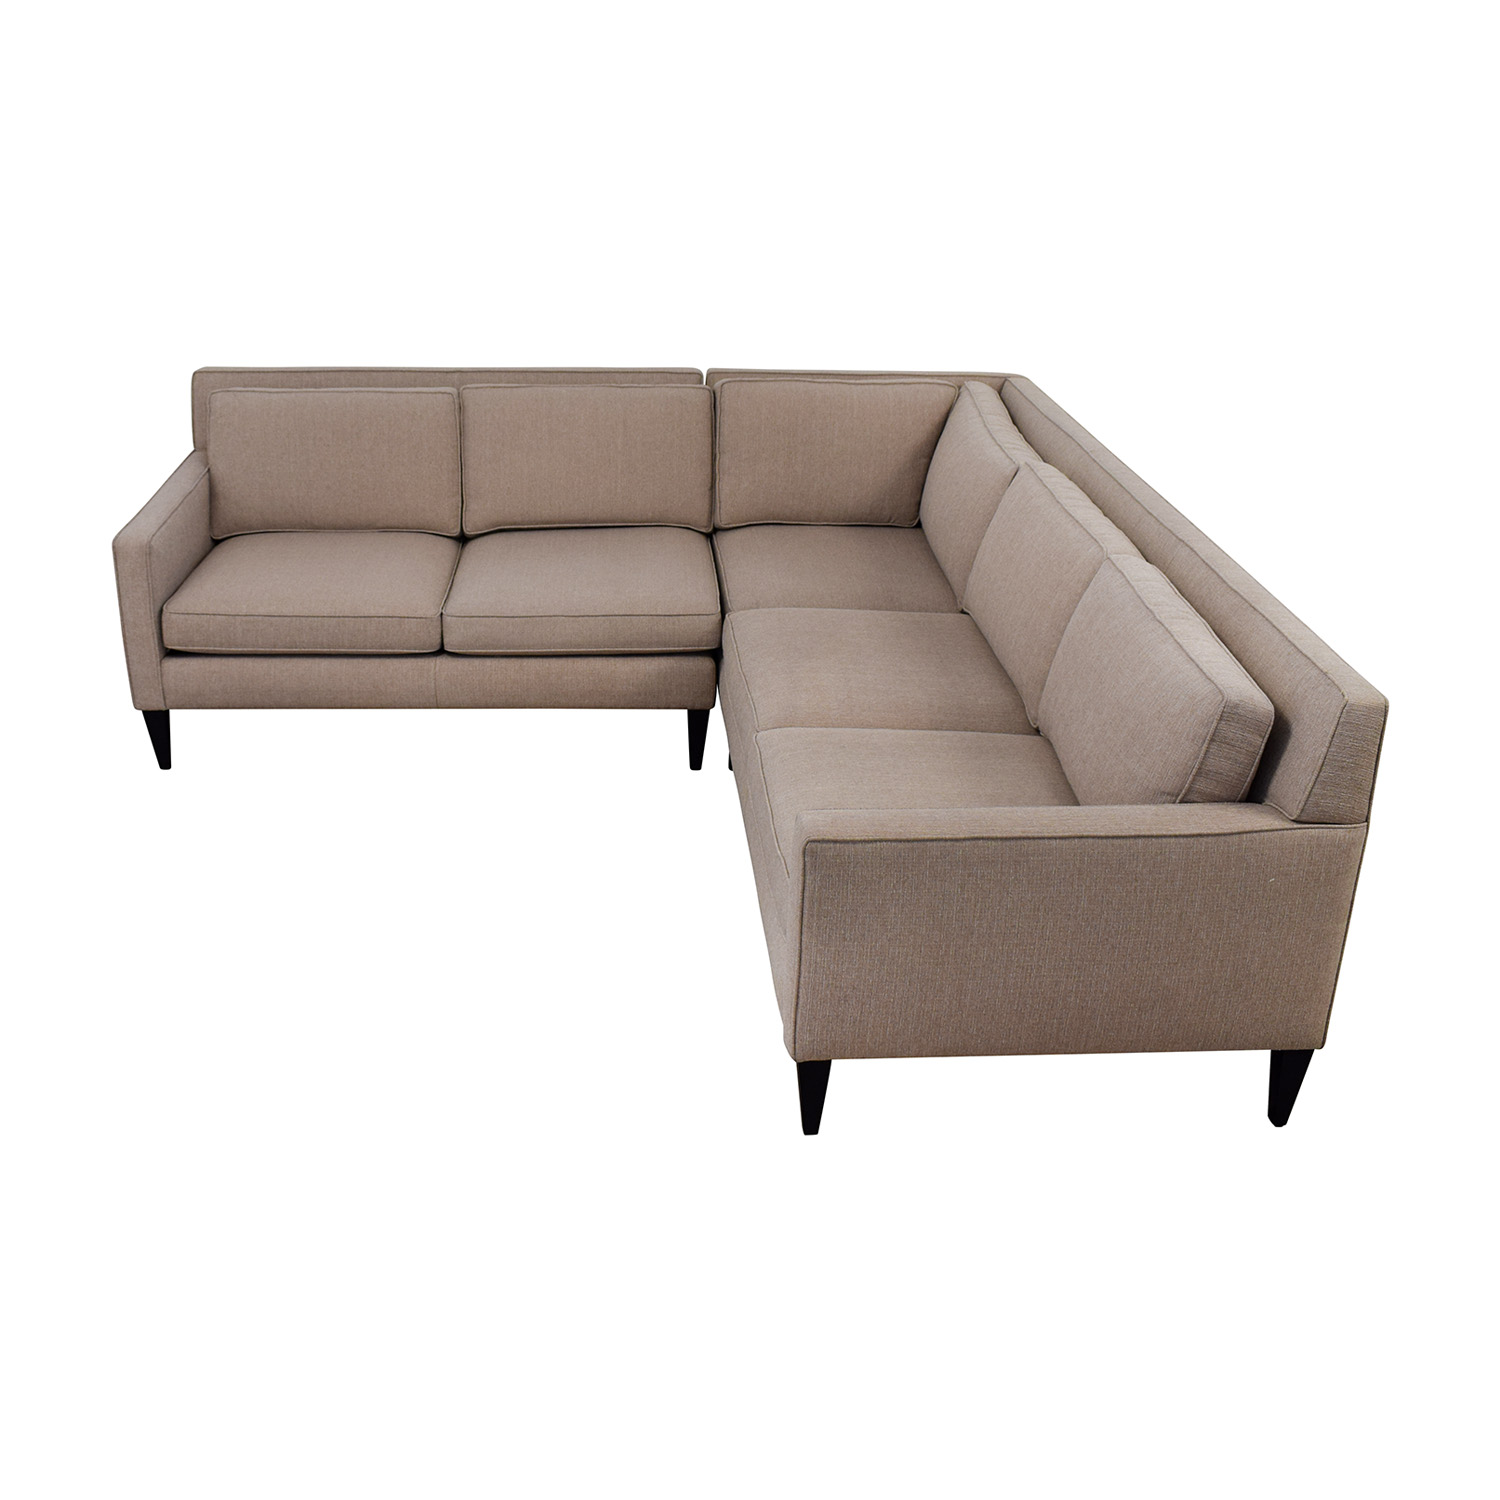 74 off crate barrel crate barrel rochelle midcentury modern sectional sofas